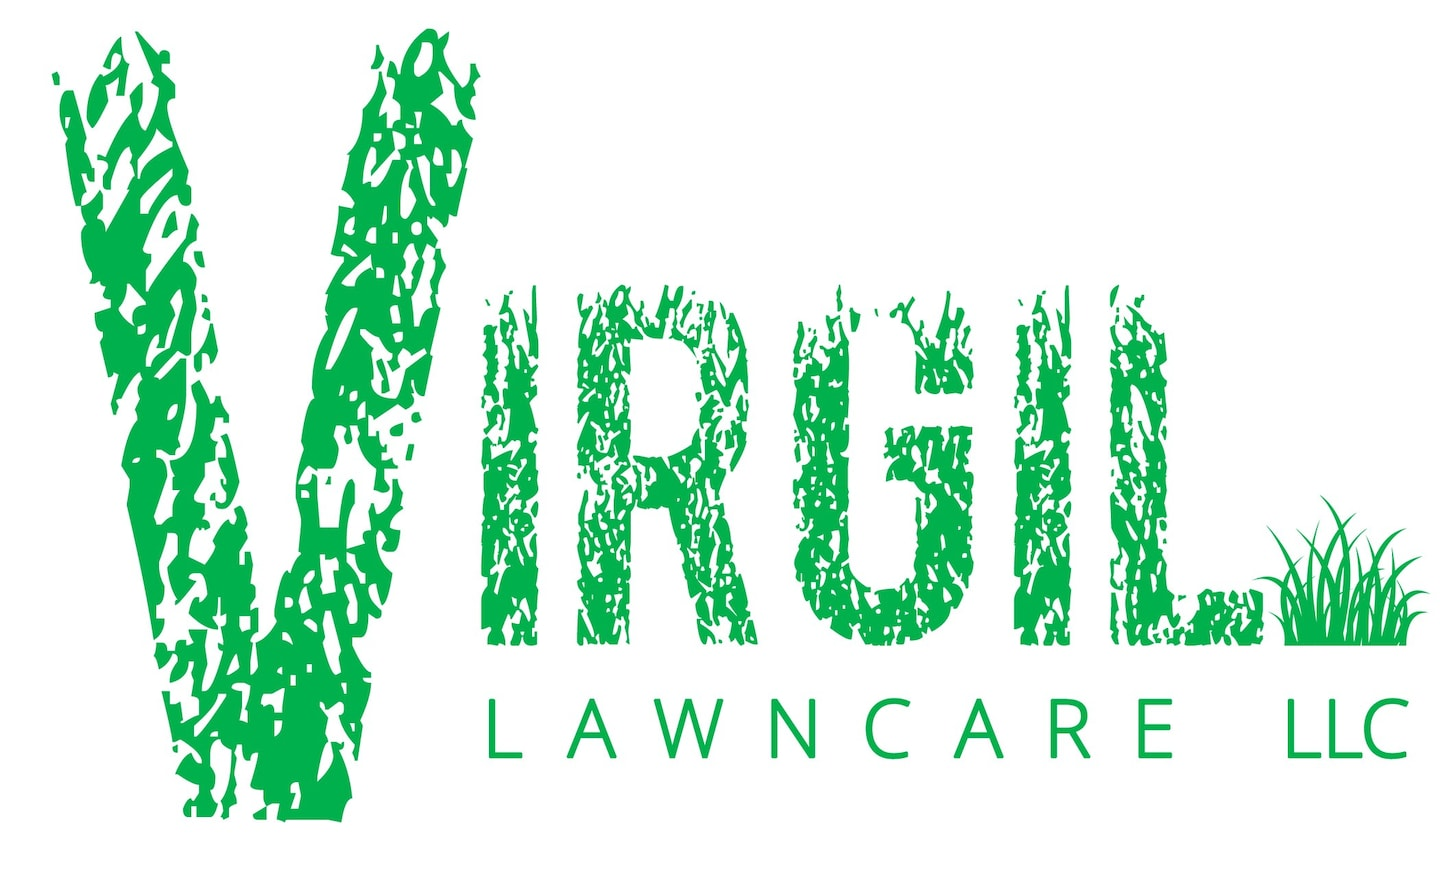 Virgil Lawn Care LLC